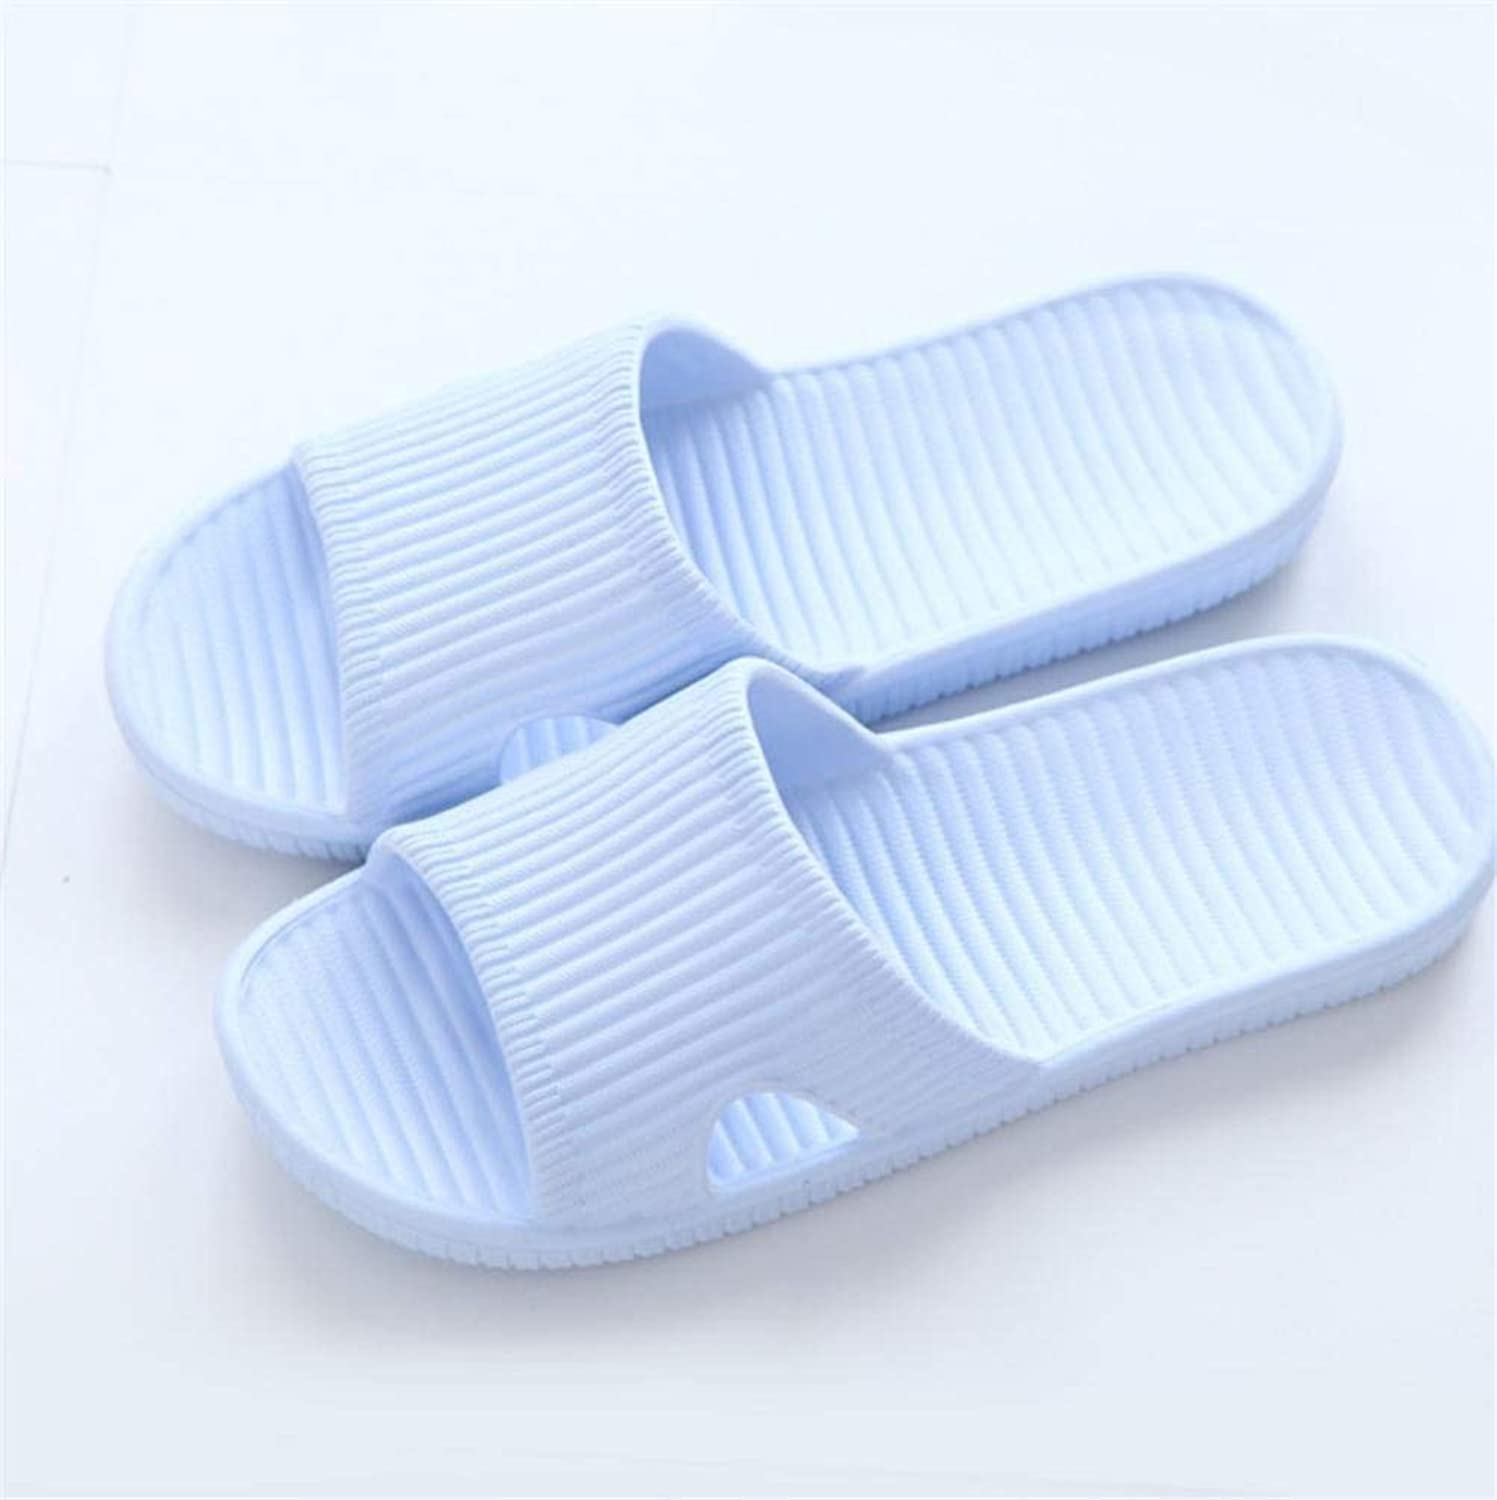 Lady Slippers Ladies Indoor Leisure Home Spa Slippers Casual Spring and Summer Light bluee Solid color Waterproof Non-Slip Slippers Size 40